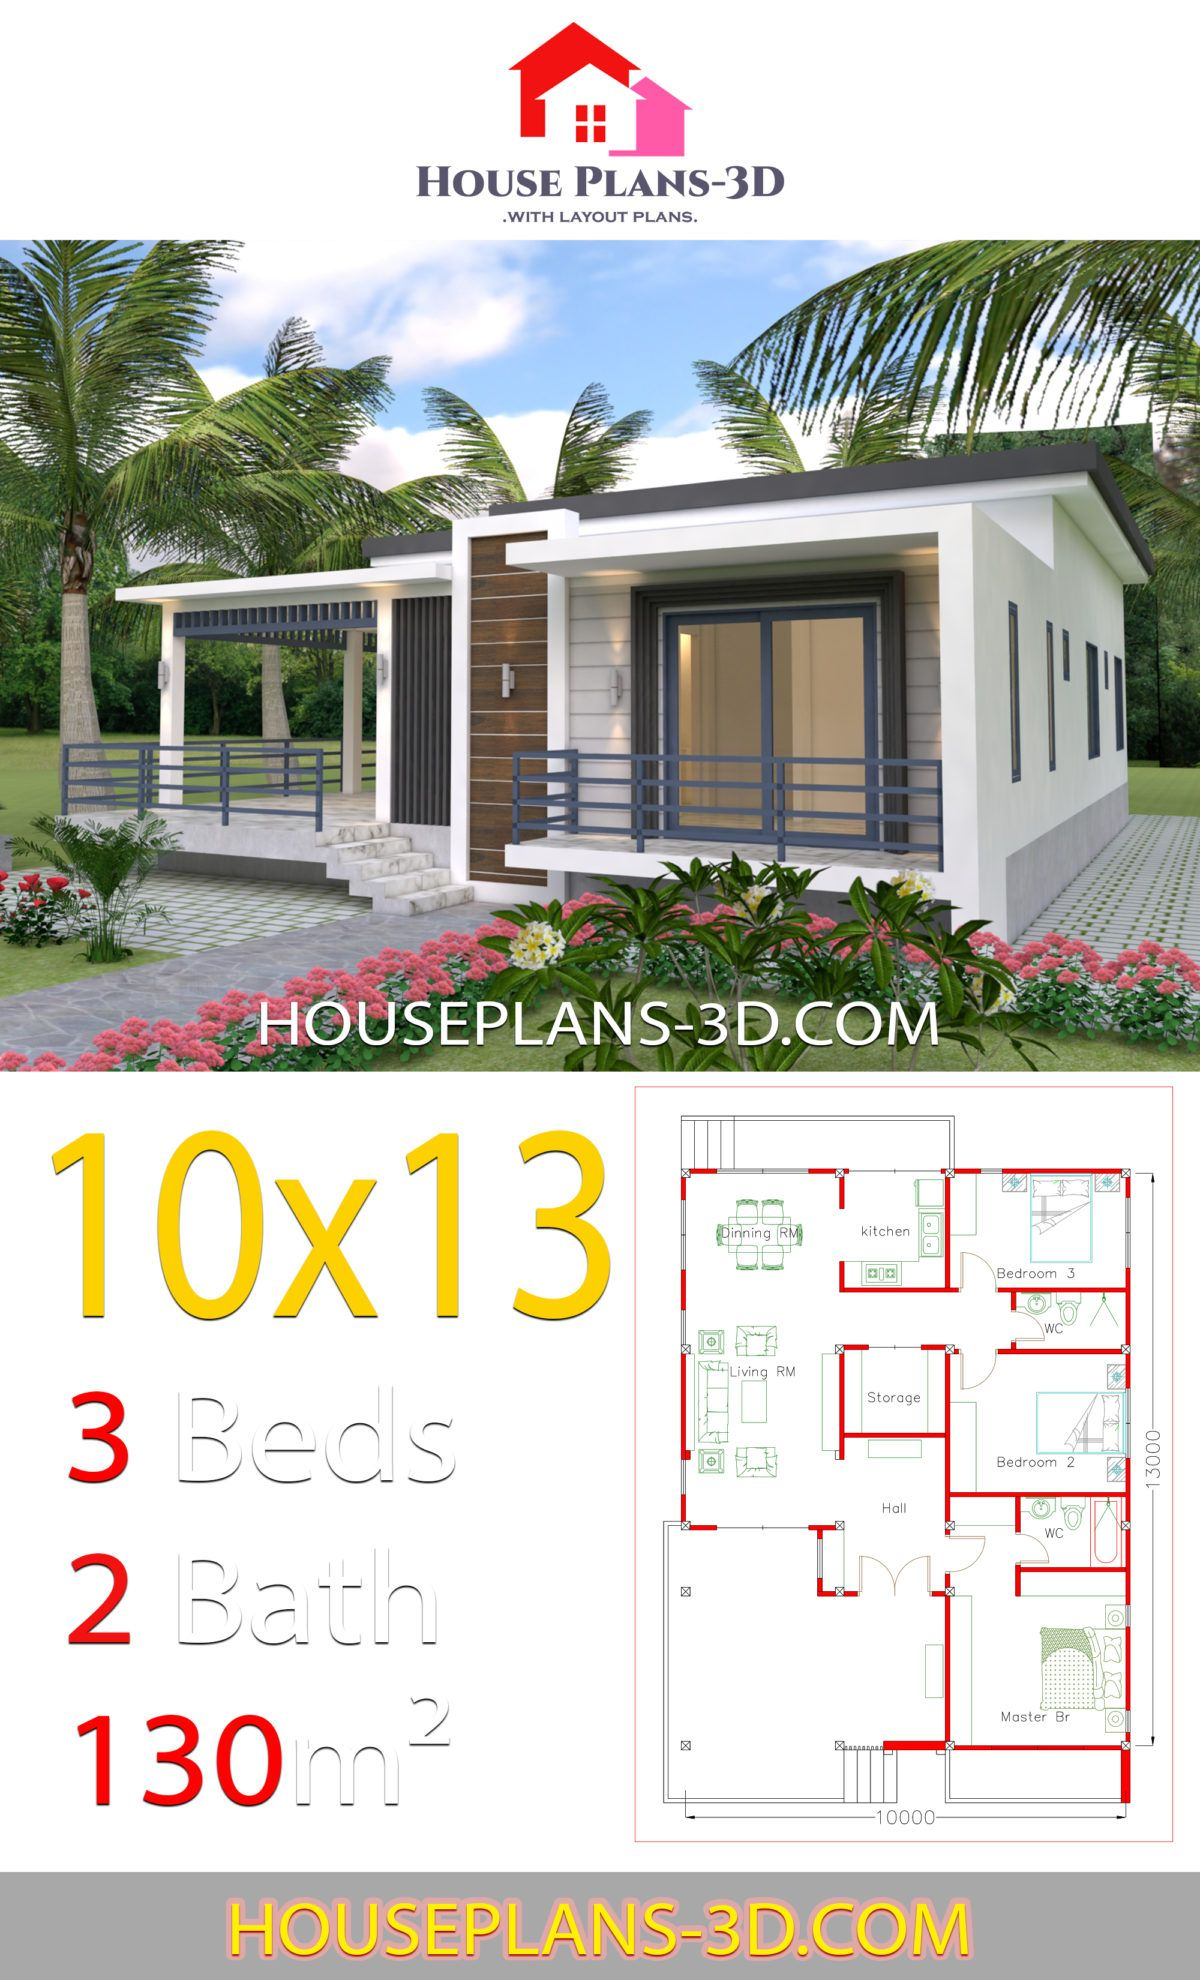 House Design 10x13 With 3 Bedrooms Terrace Roof House Plans 3d Small House Design Plans House Layout Plans House Plans